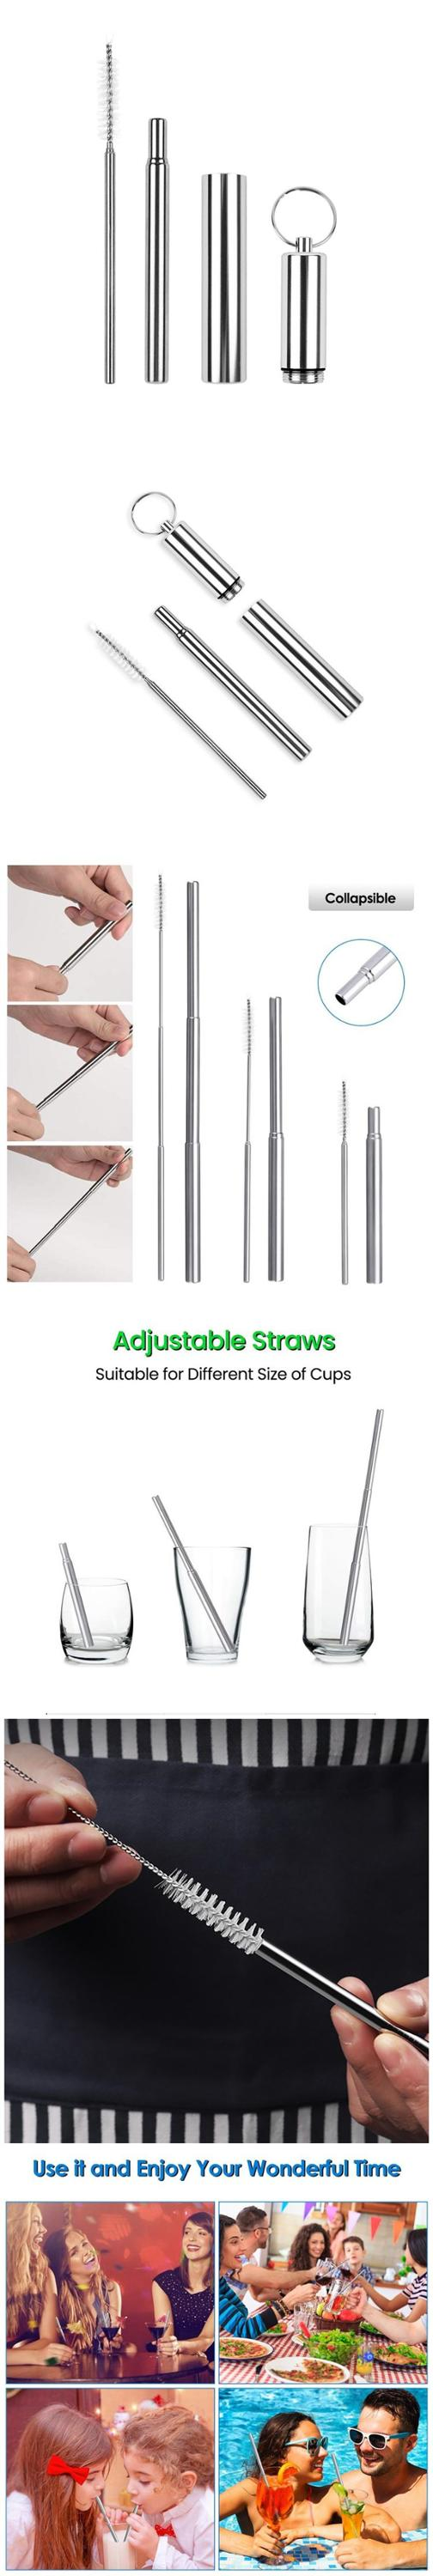 Reusable Collapsible Straw Telescopic Stainless Steel Metal Straw with Aluminum Case